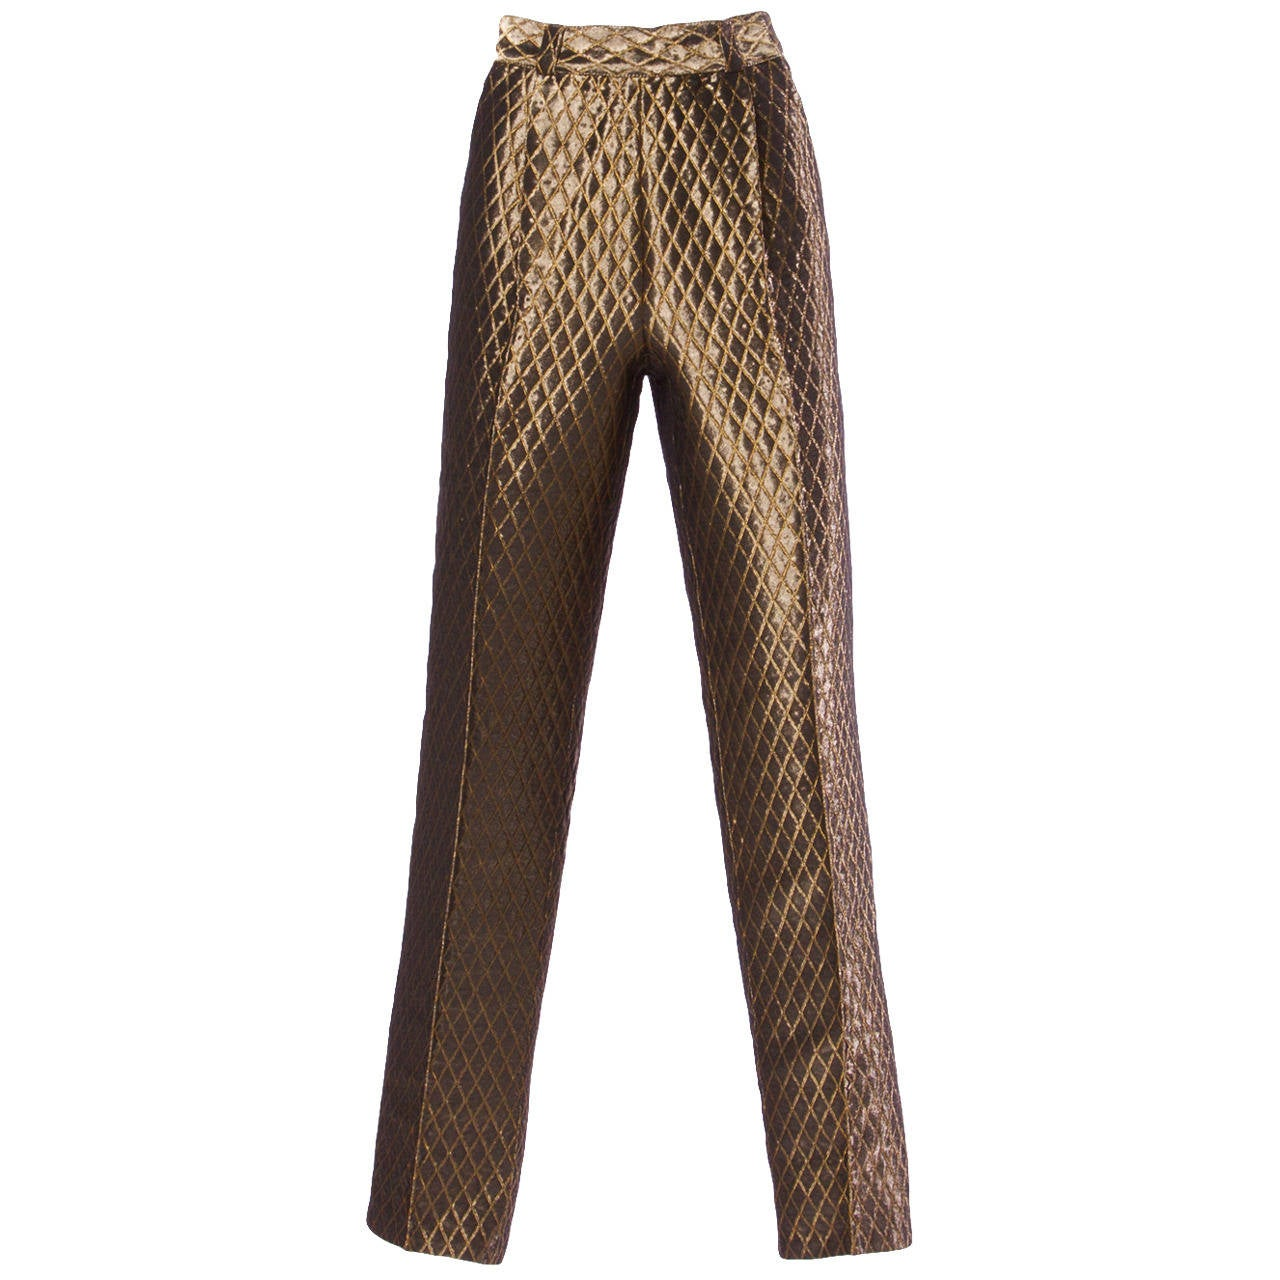 d7cee864ac5aa Gianni Versace Couture Vintage Metallic Gold Quilted High Waisted Pants For  Sale